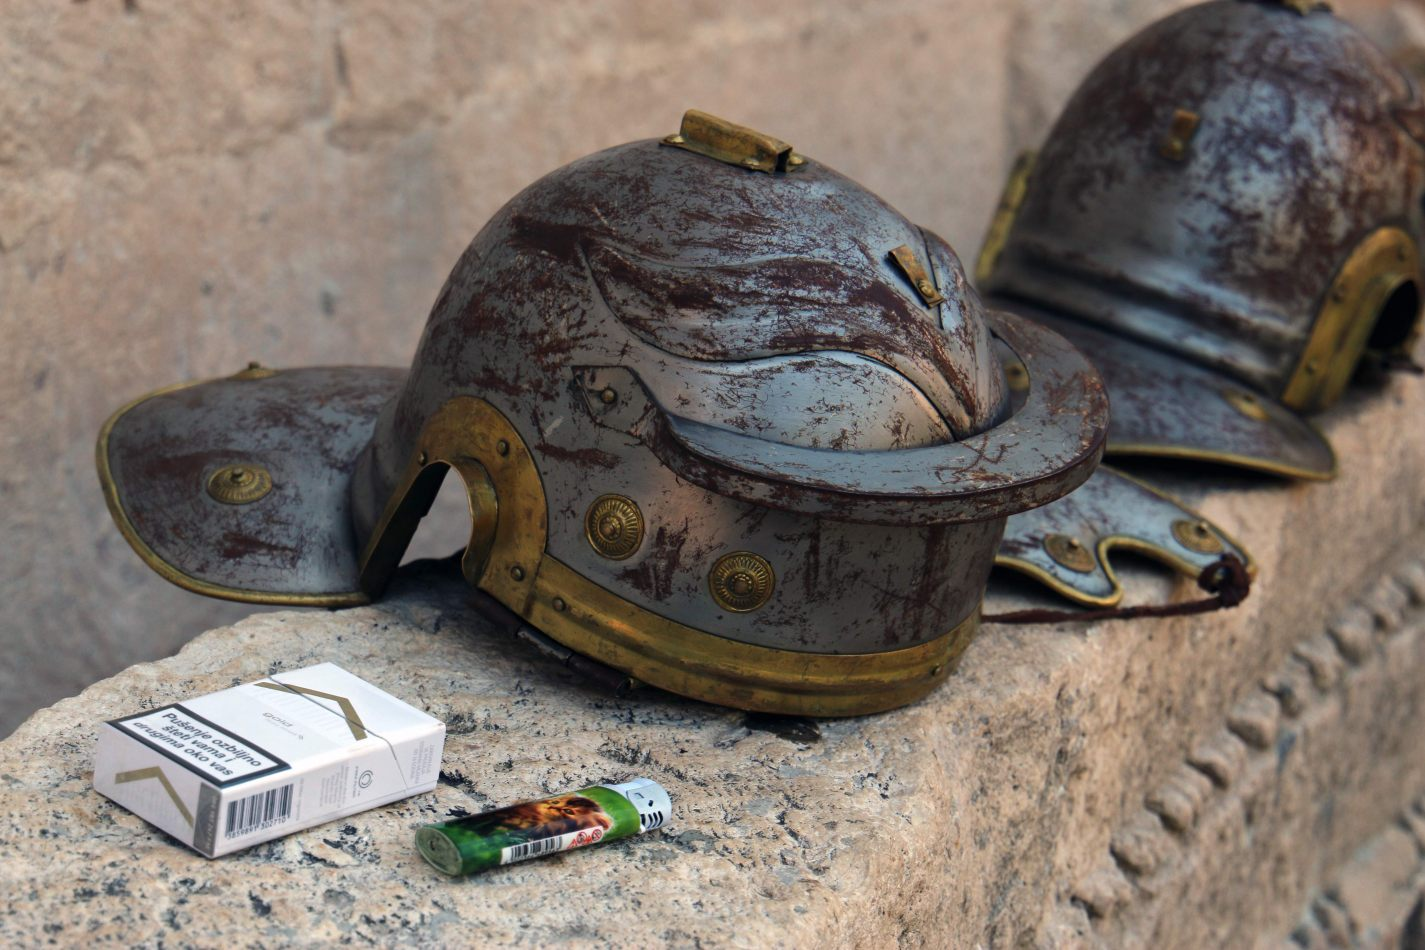 Anthony Ellis Photography: Pine Needles and Broken Tiles - Cigarettes and Plastic Helmets